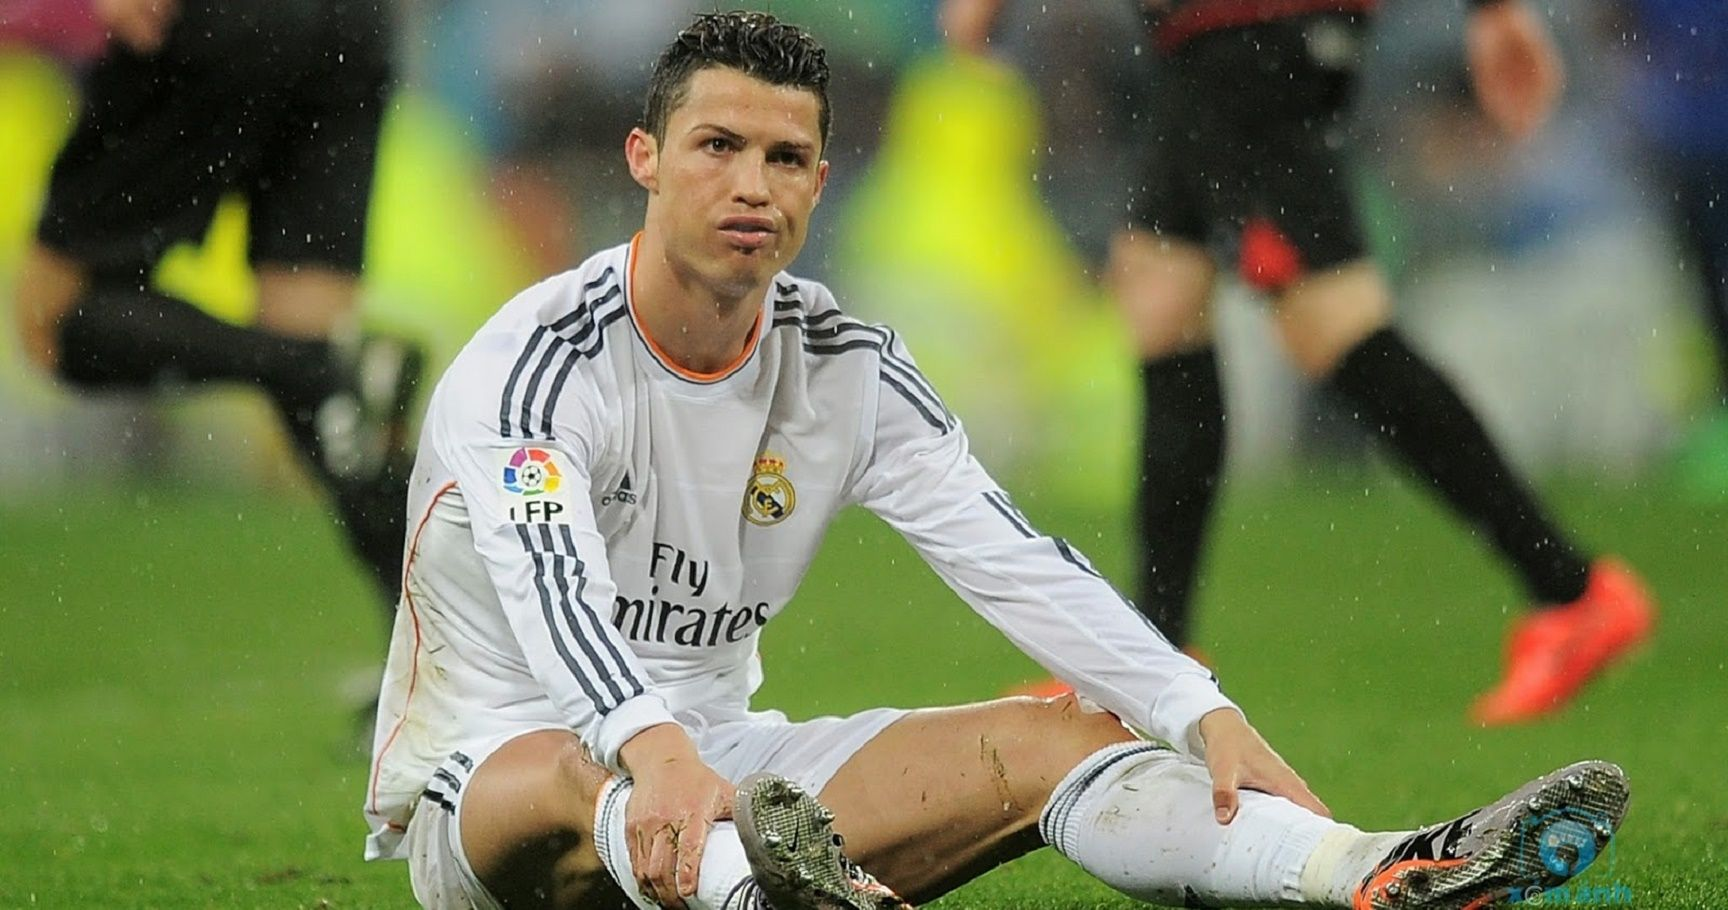 Top 20 Most Hated World Football Players | TheSportster